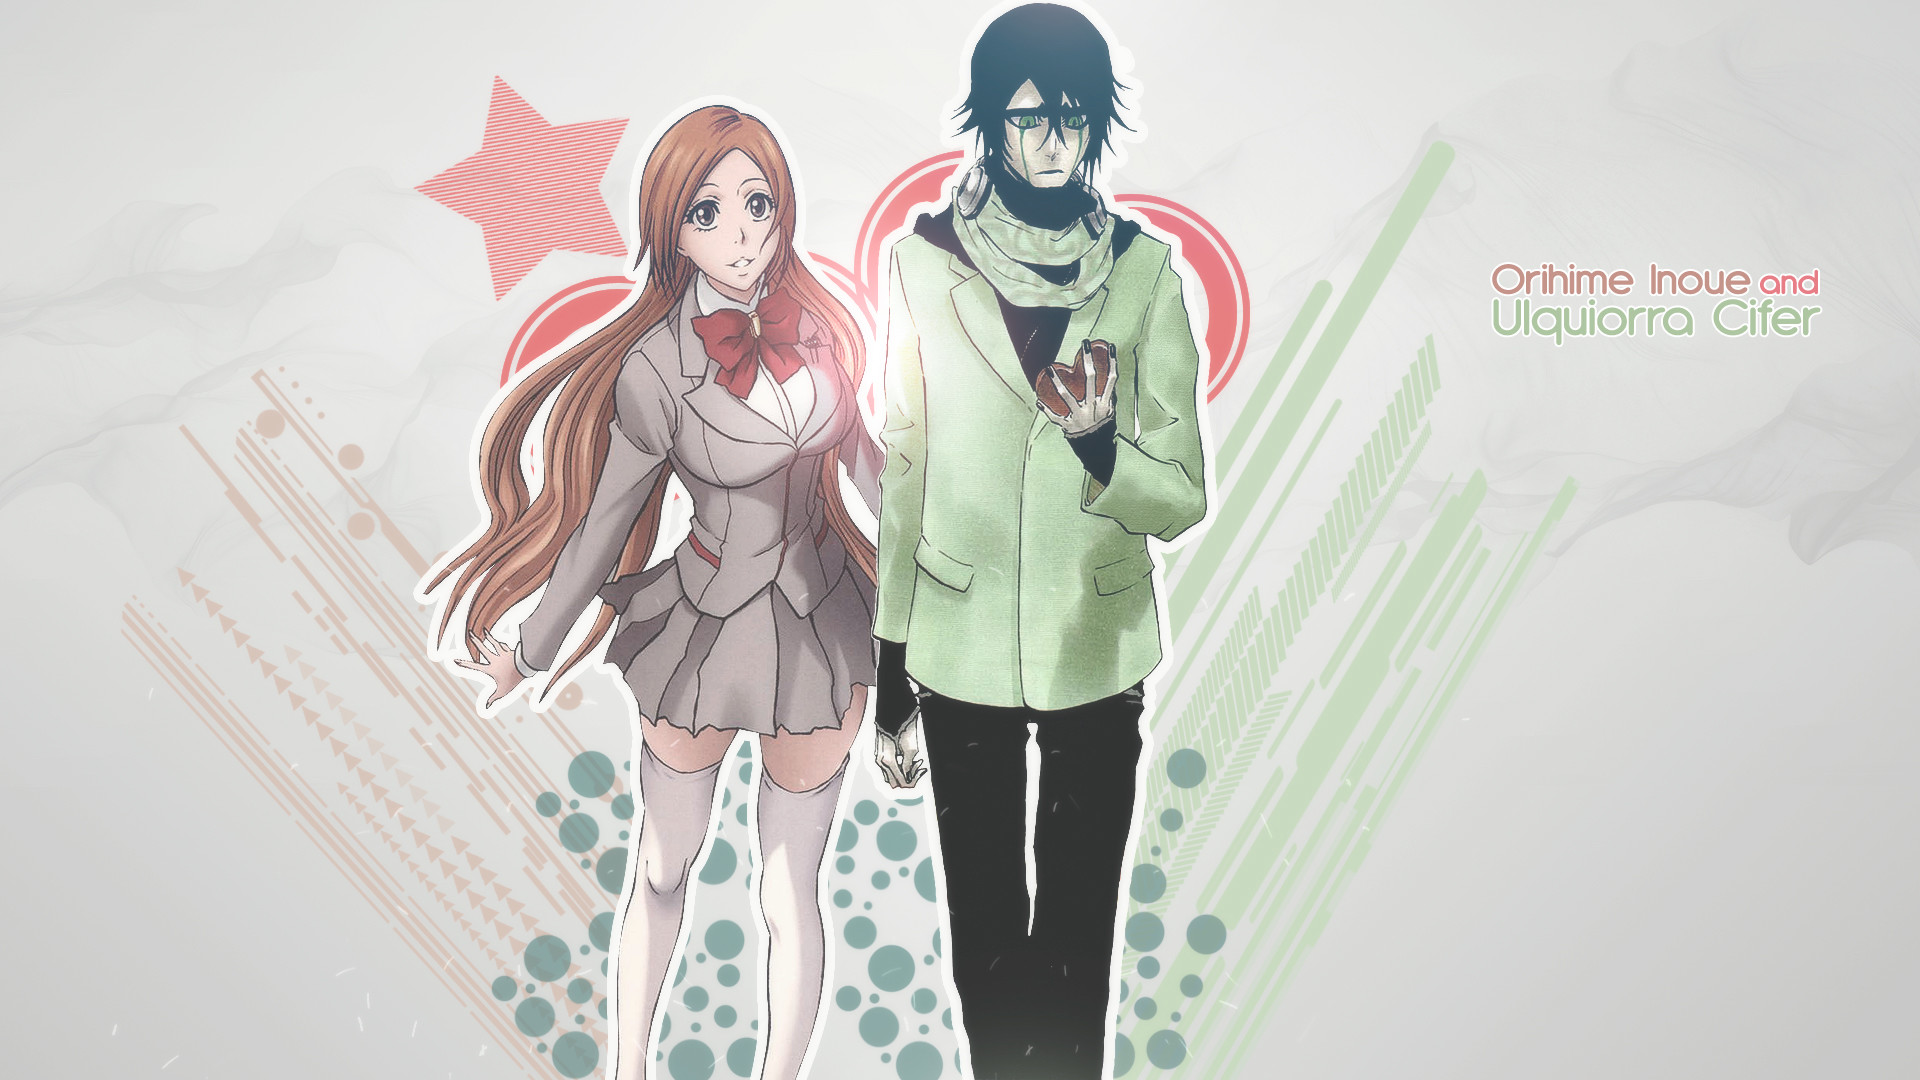 Res: 1920x1080, Orihime Inoue and Ulquiorra Cifer by JuliannMiic Orihime Inoue and  Ulquiorra Cifer by JuliannMiic